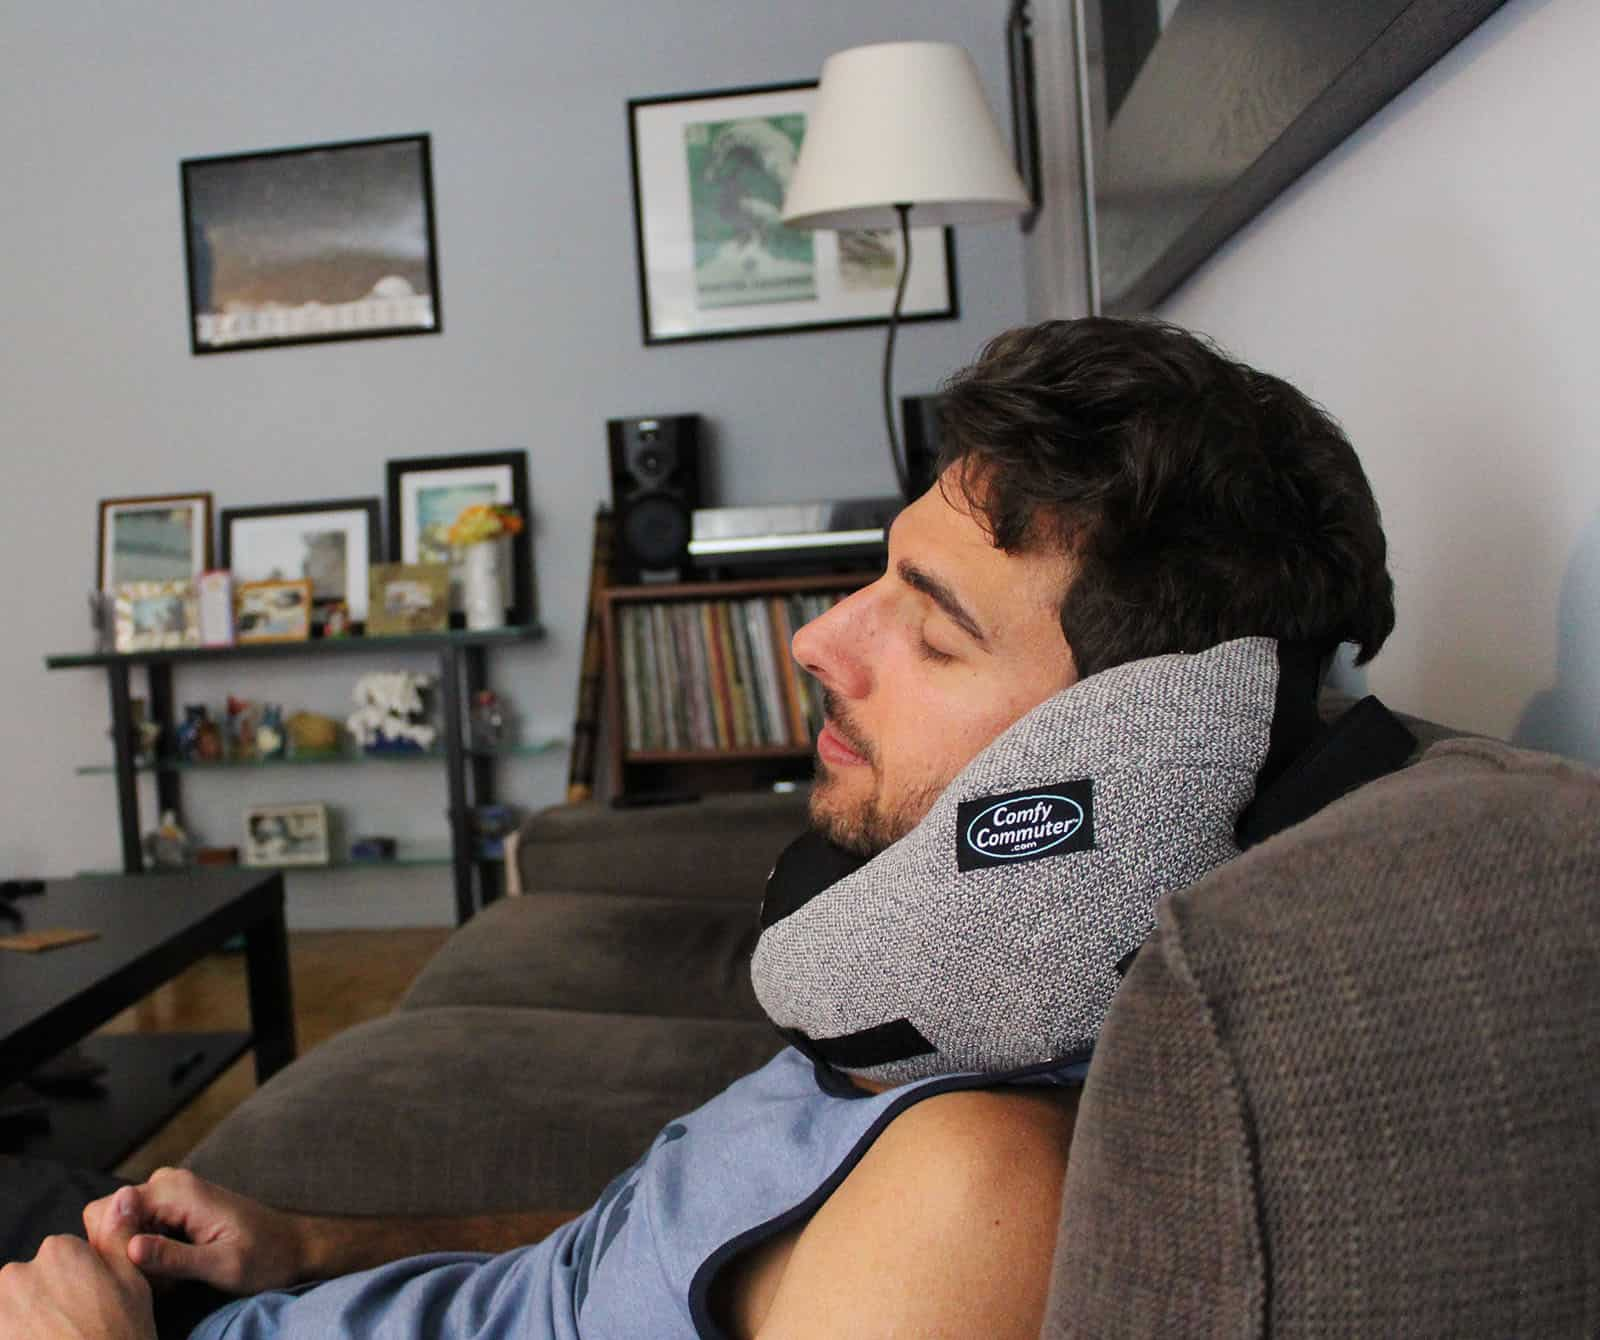 Review: Comfy Commuter Travel Pillow